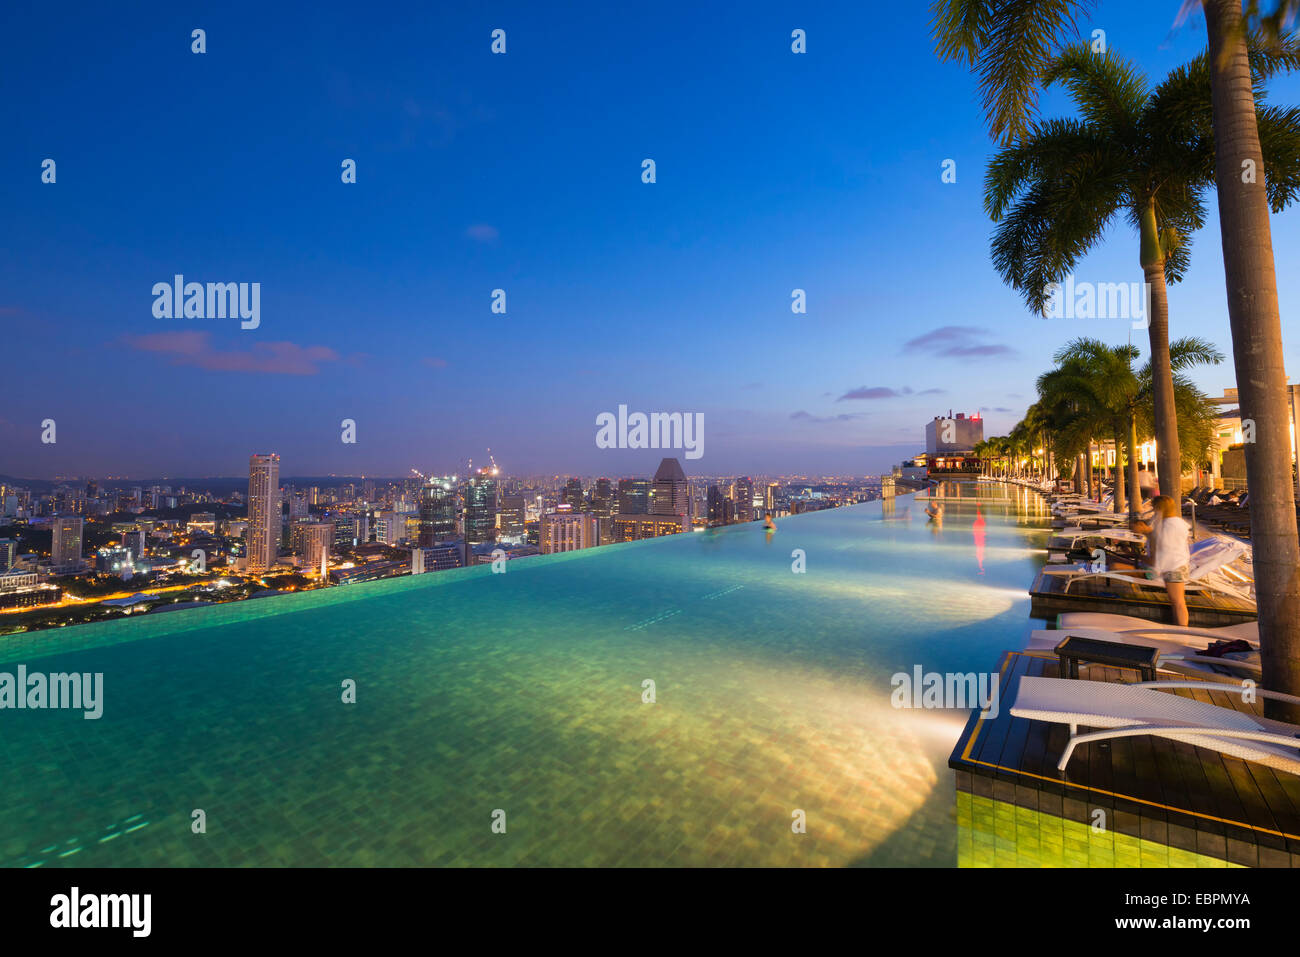 Infinity pool of the marina bay sands singapore southeast asia stock photo royalty free image - Singapore marina bay sands infinity pool ...